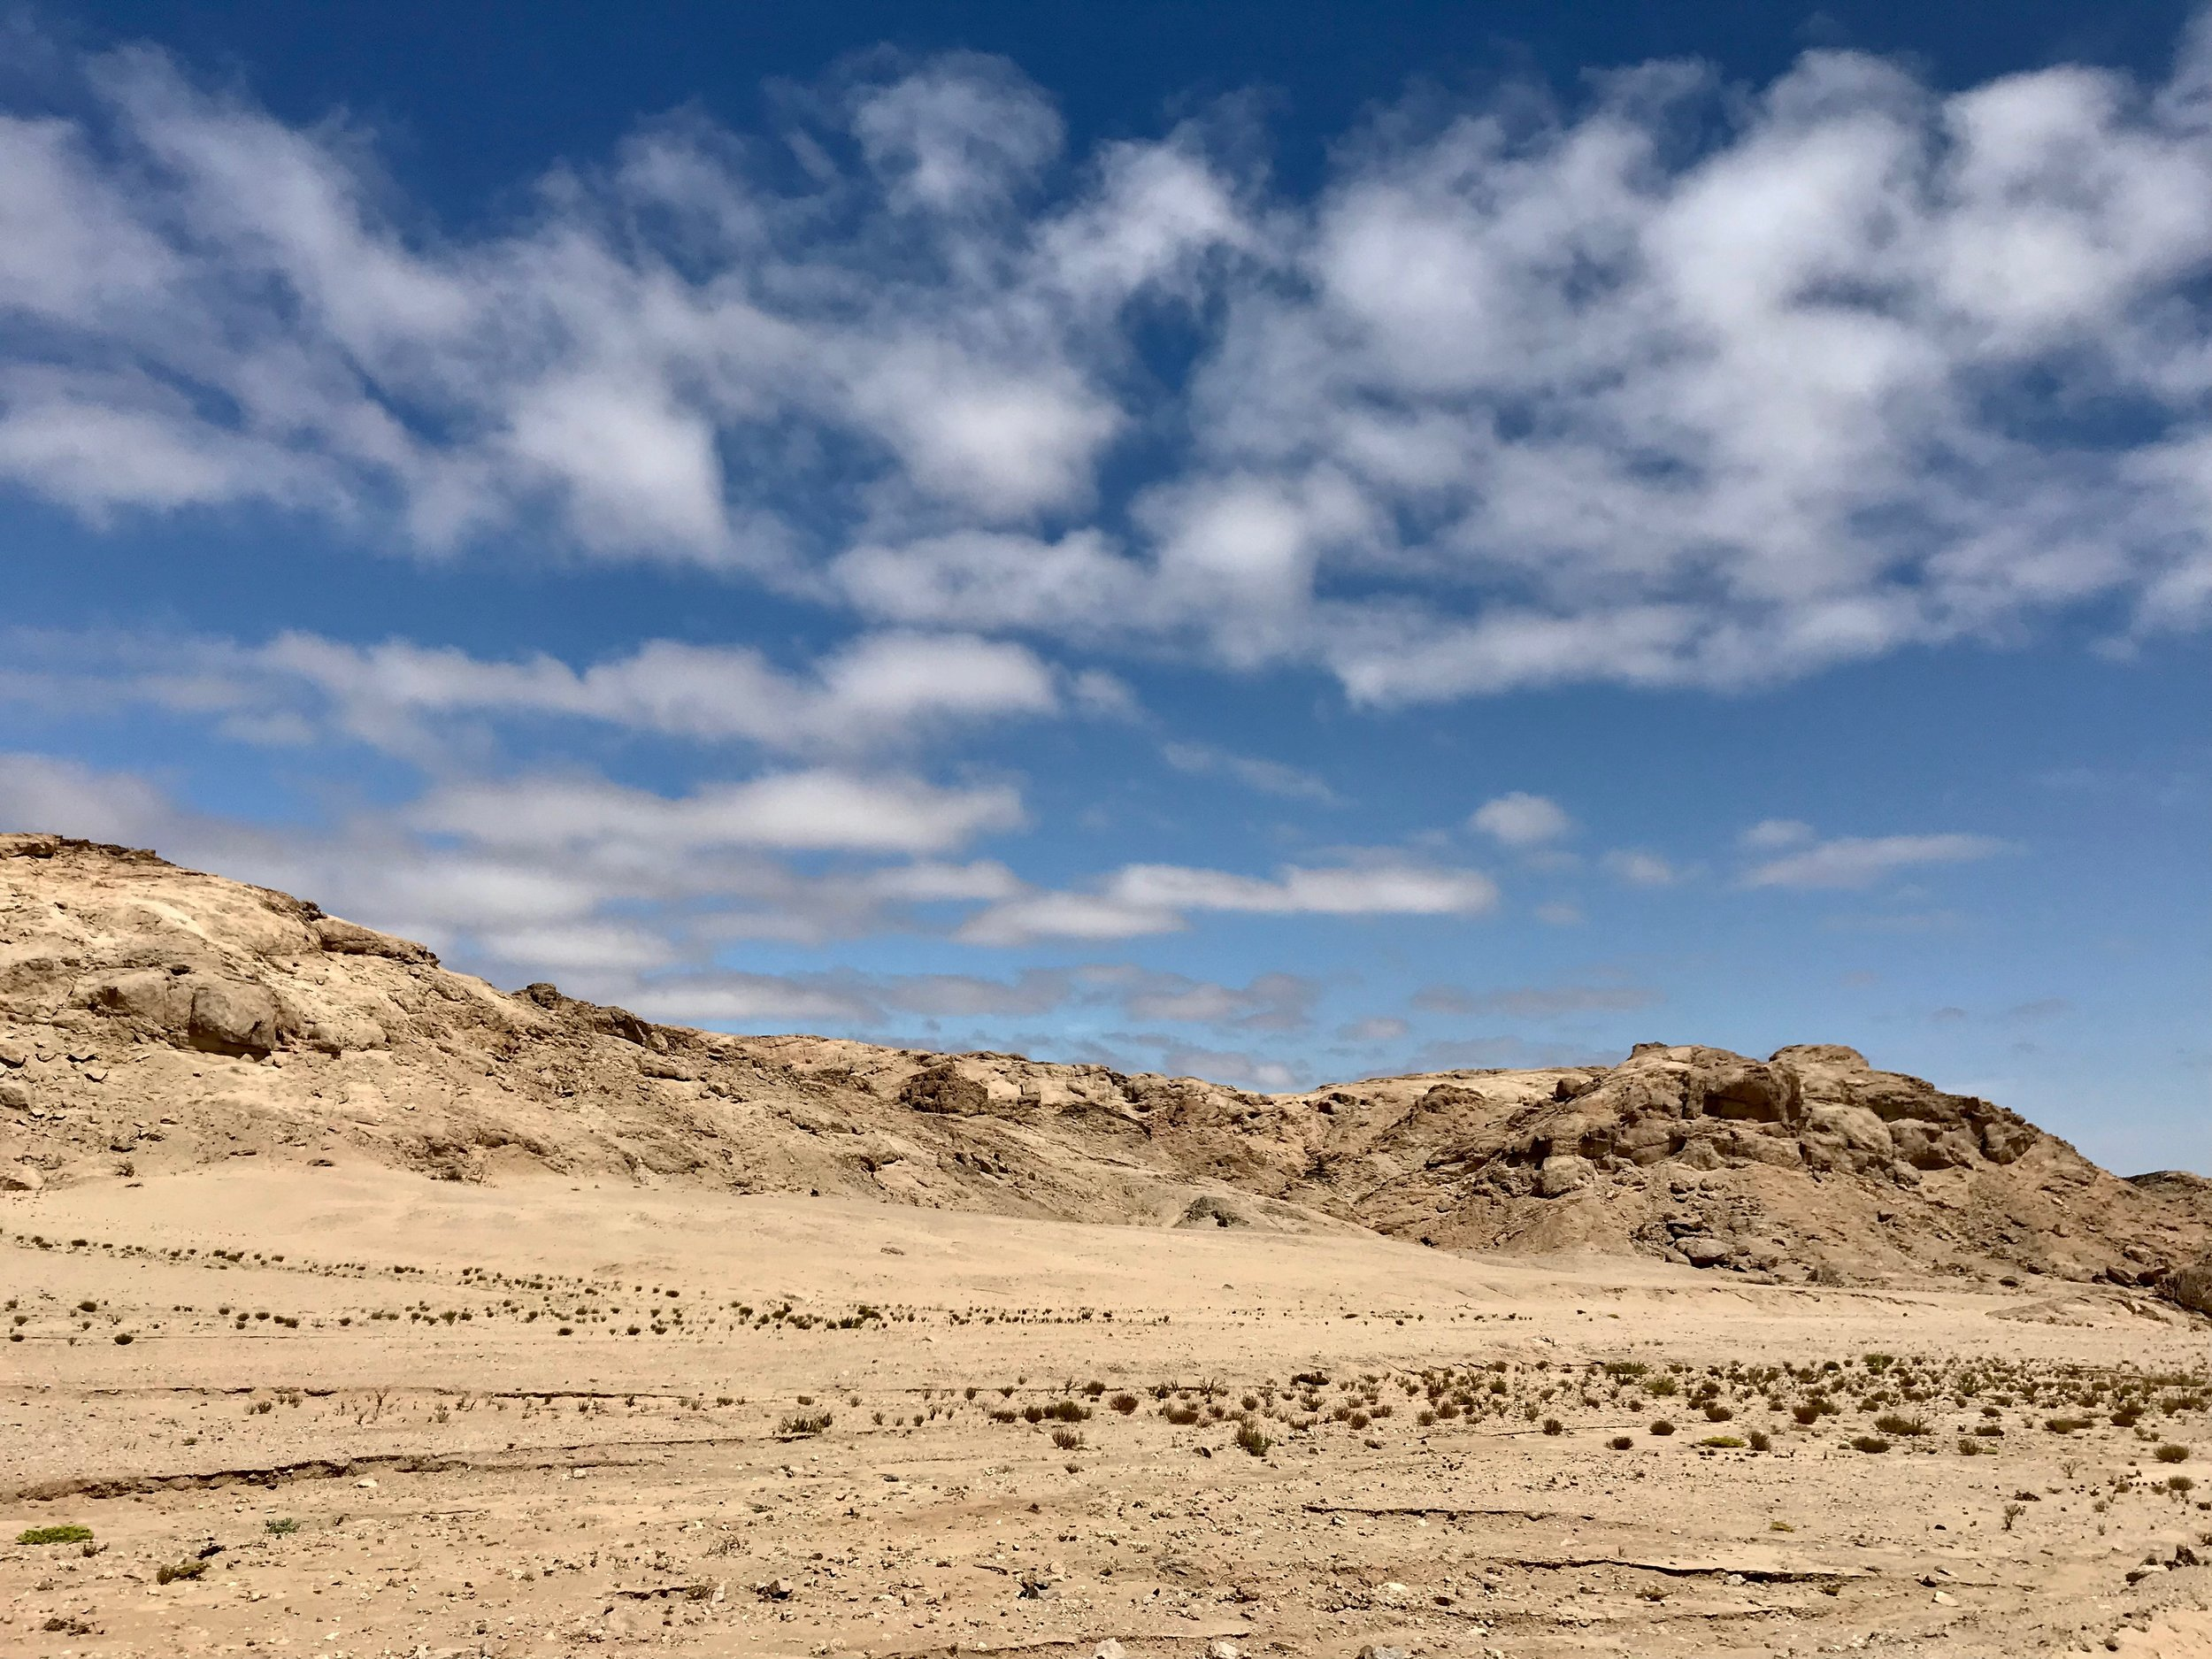 Sand and rock scapes everywhere